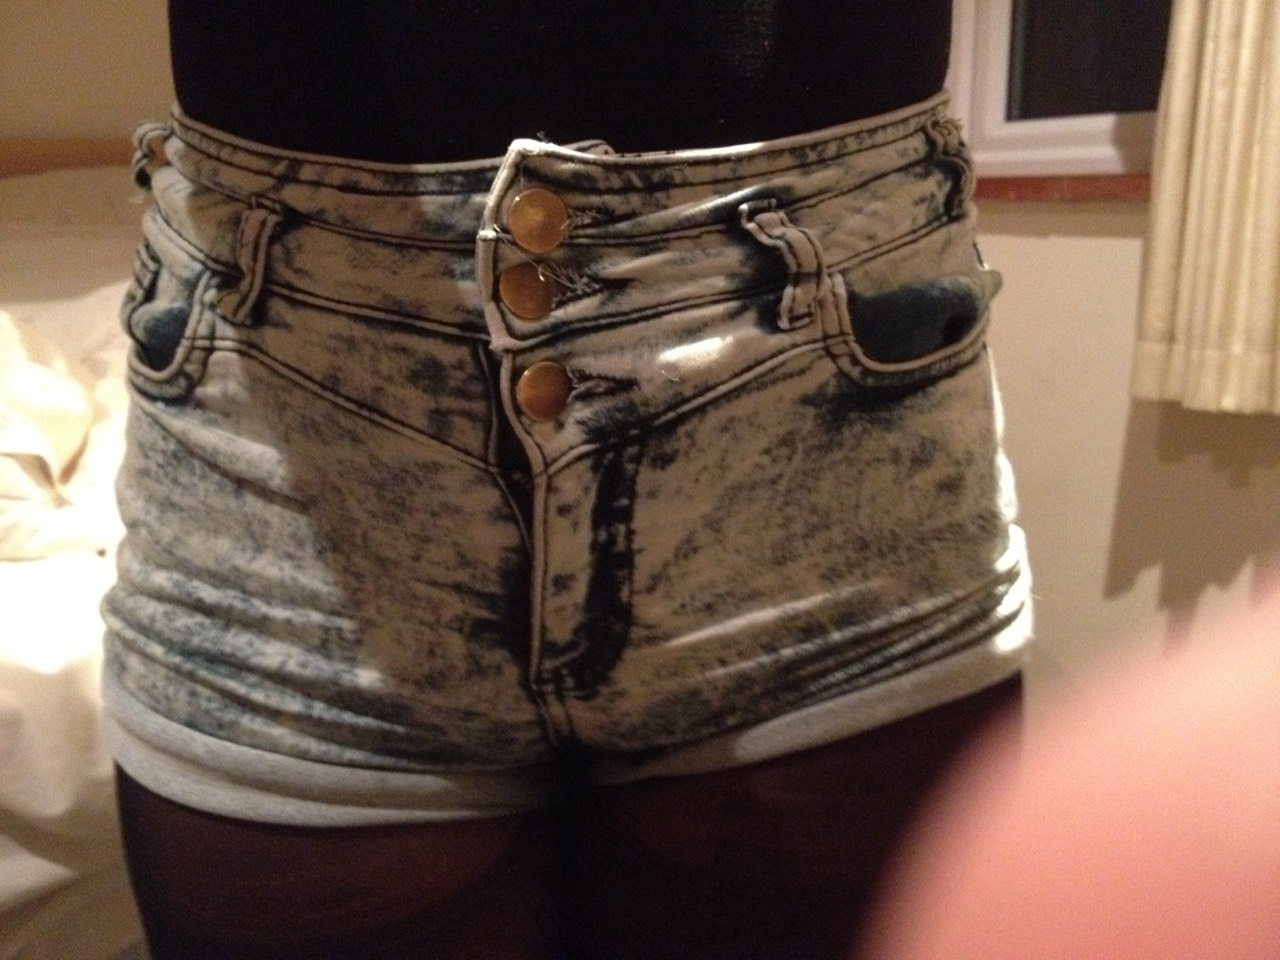 Some high top shorts